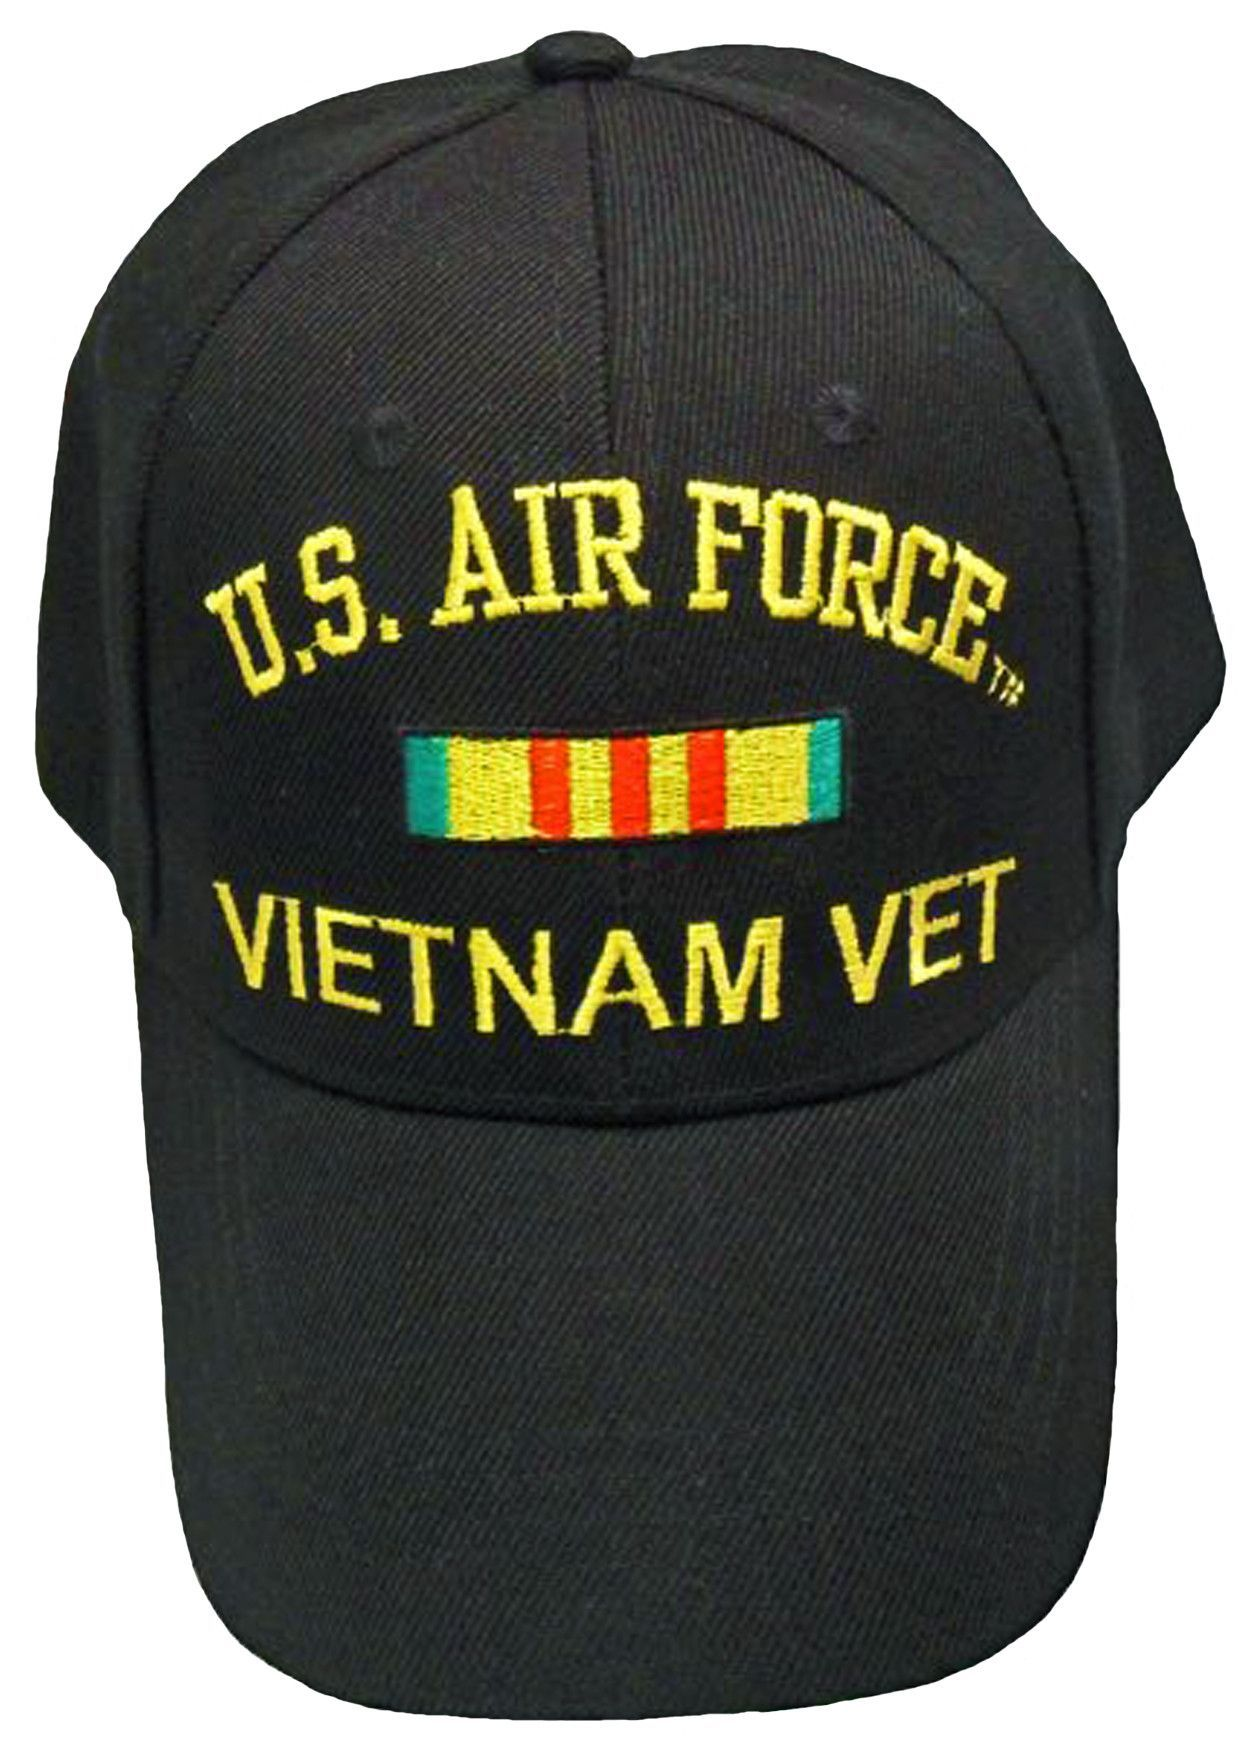 7a2666353d7 US Air Force Vietnam Vet Baseball Cap Black Military Veteran Hat